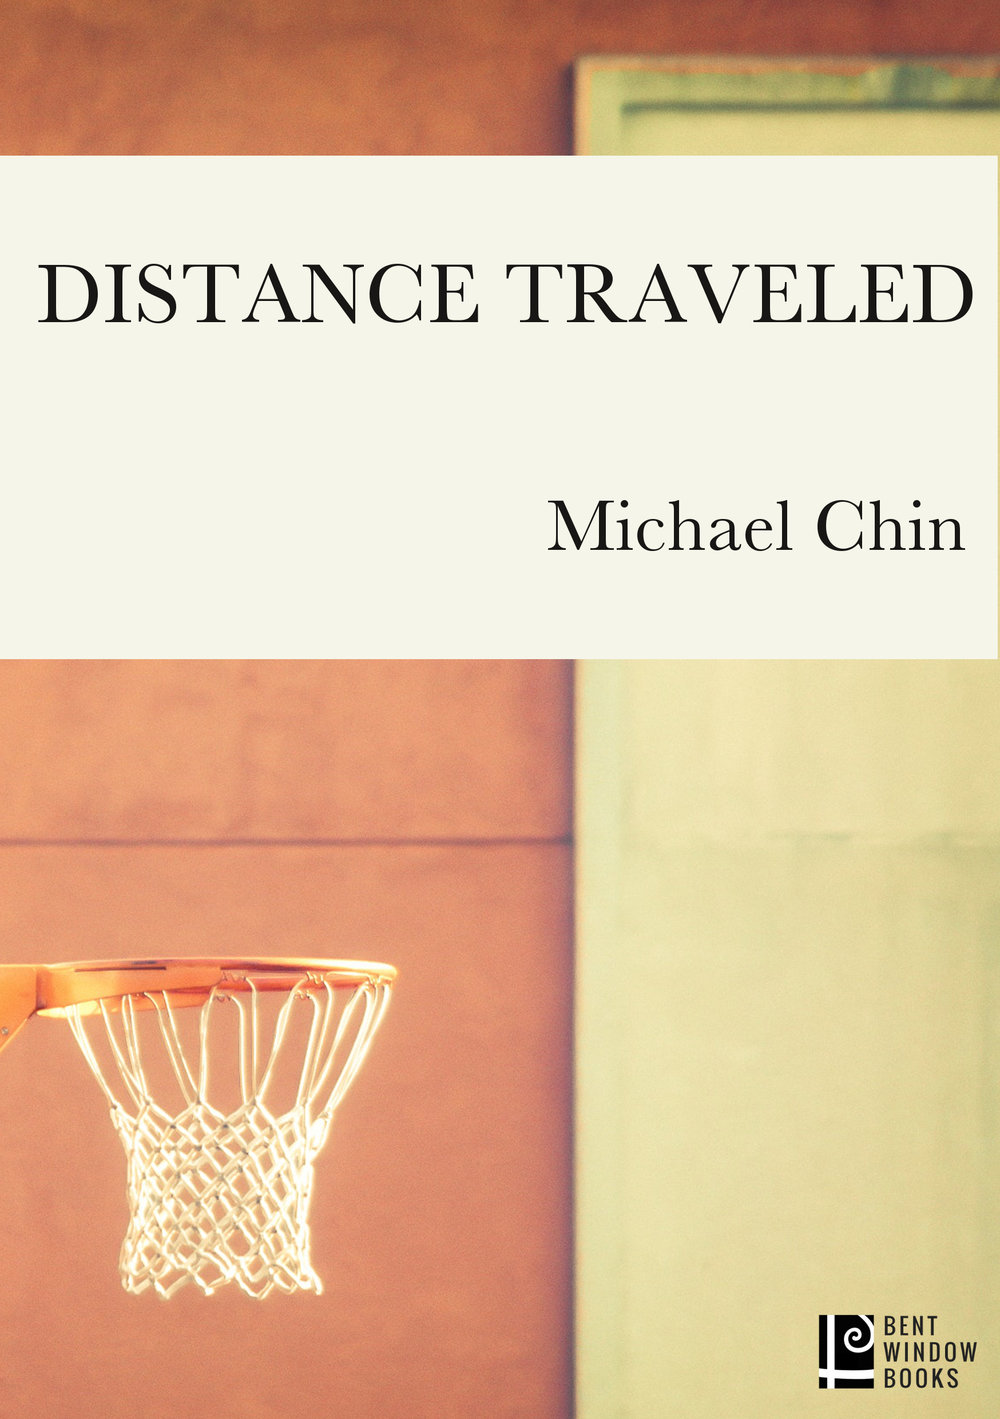 - Distance Traveled (2018) is a hybrid chapbook in which prose poems ostensibly centered on basketball craft a novella about aging, divorce, friendship, and a cross-country road trip.It is available now from Bent Window Books.